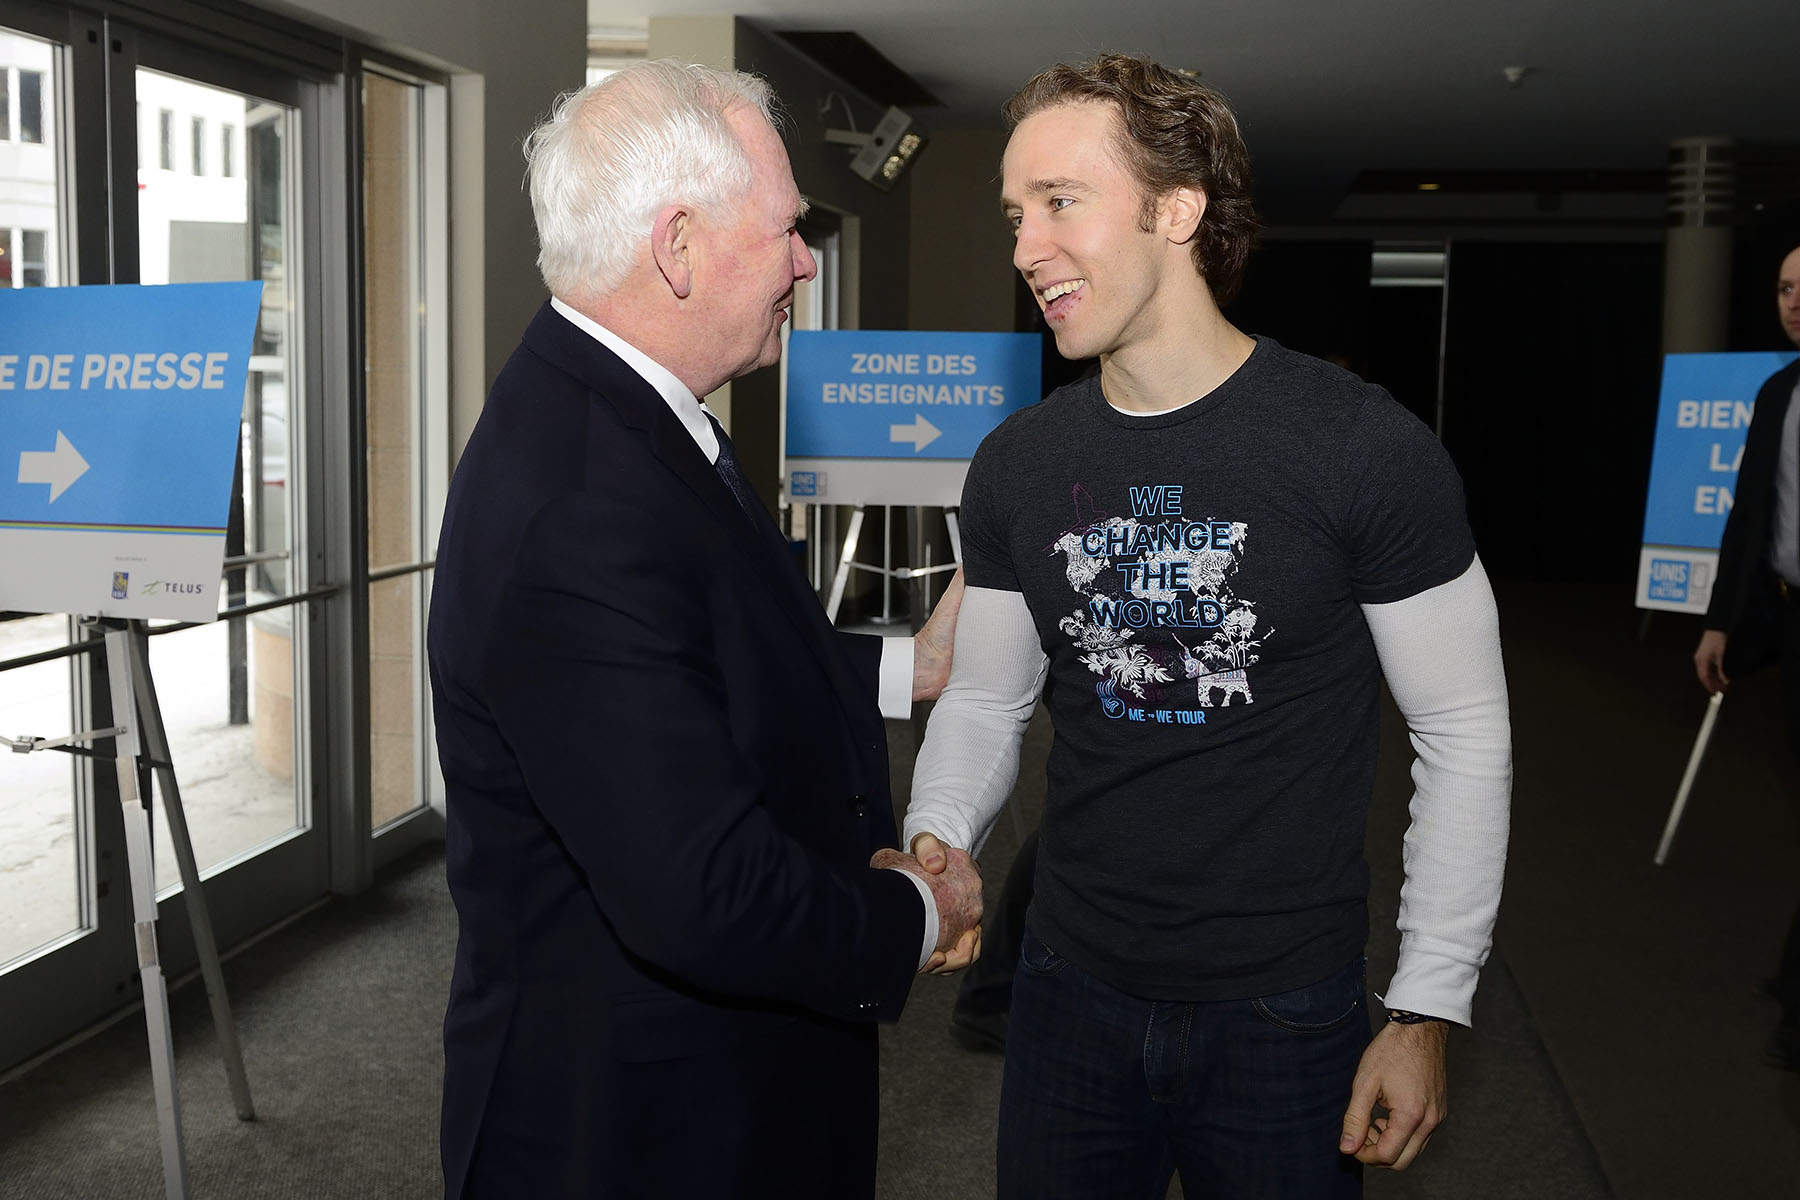 The Governor General participated in the WE Day event at the Théâtre St-Denis, in Montréal. Craig Kielburger, co-founder of Free the Children and ME to WE, greeted His Excellency upon his arrival.